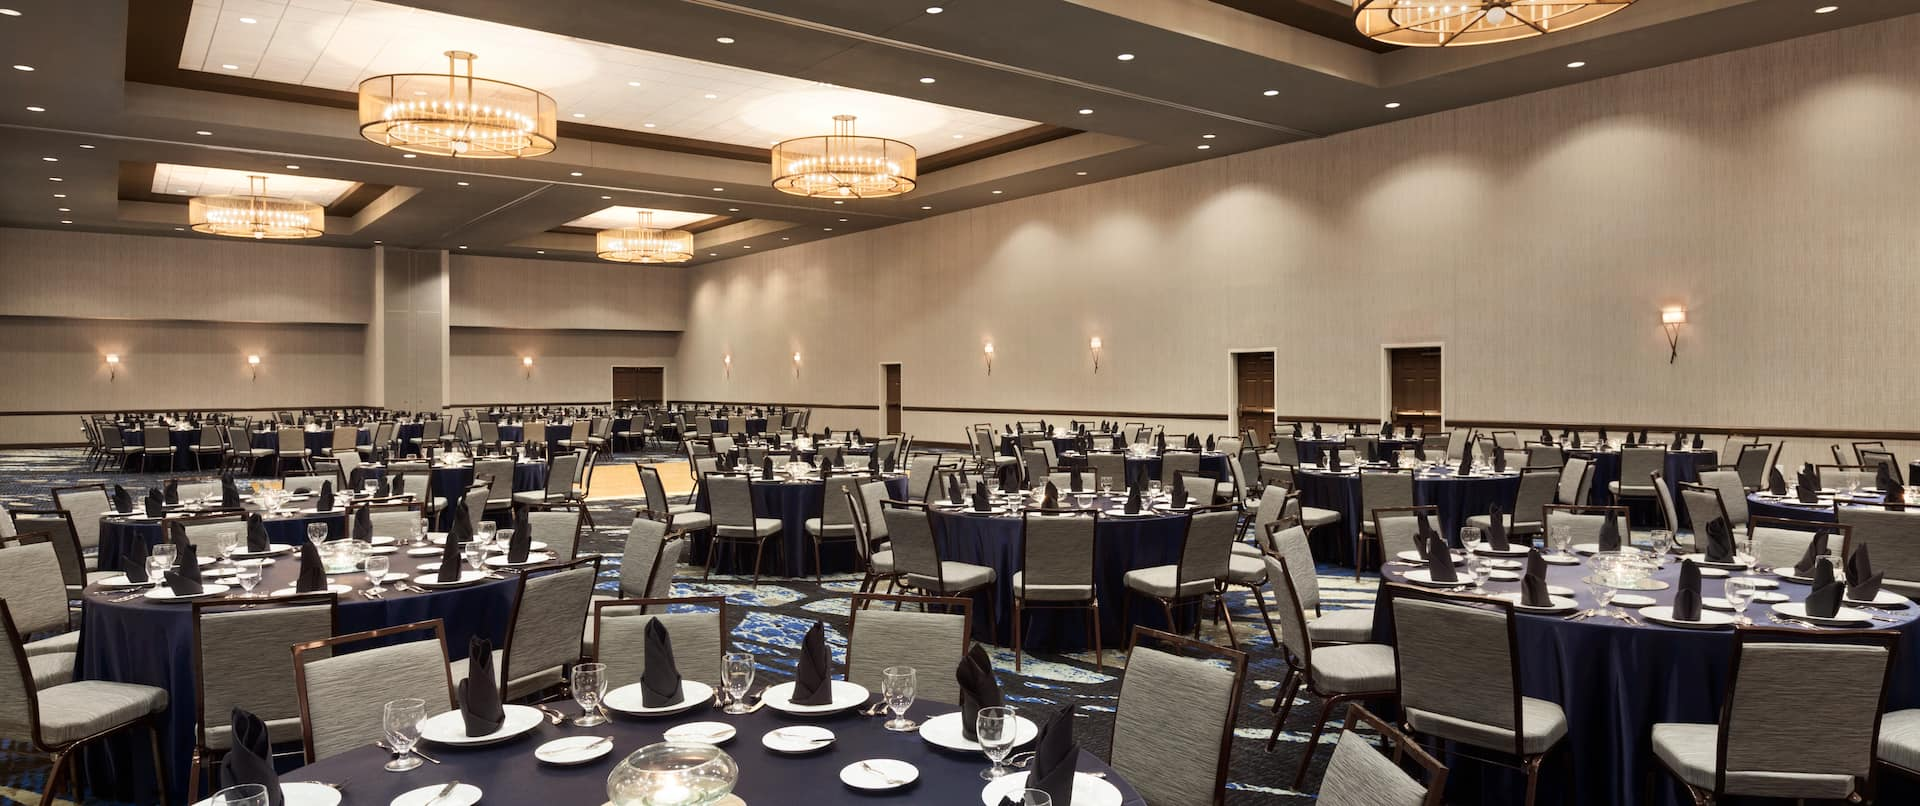 Hotel Ballroom with Banquet Setup